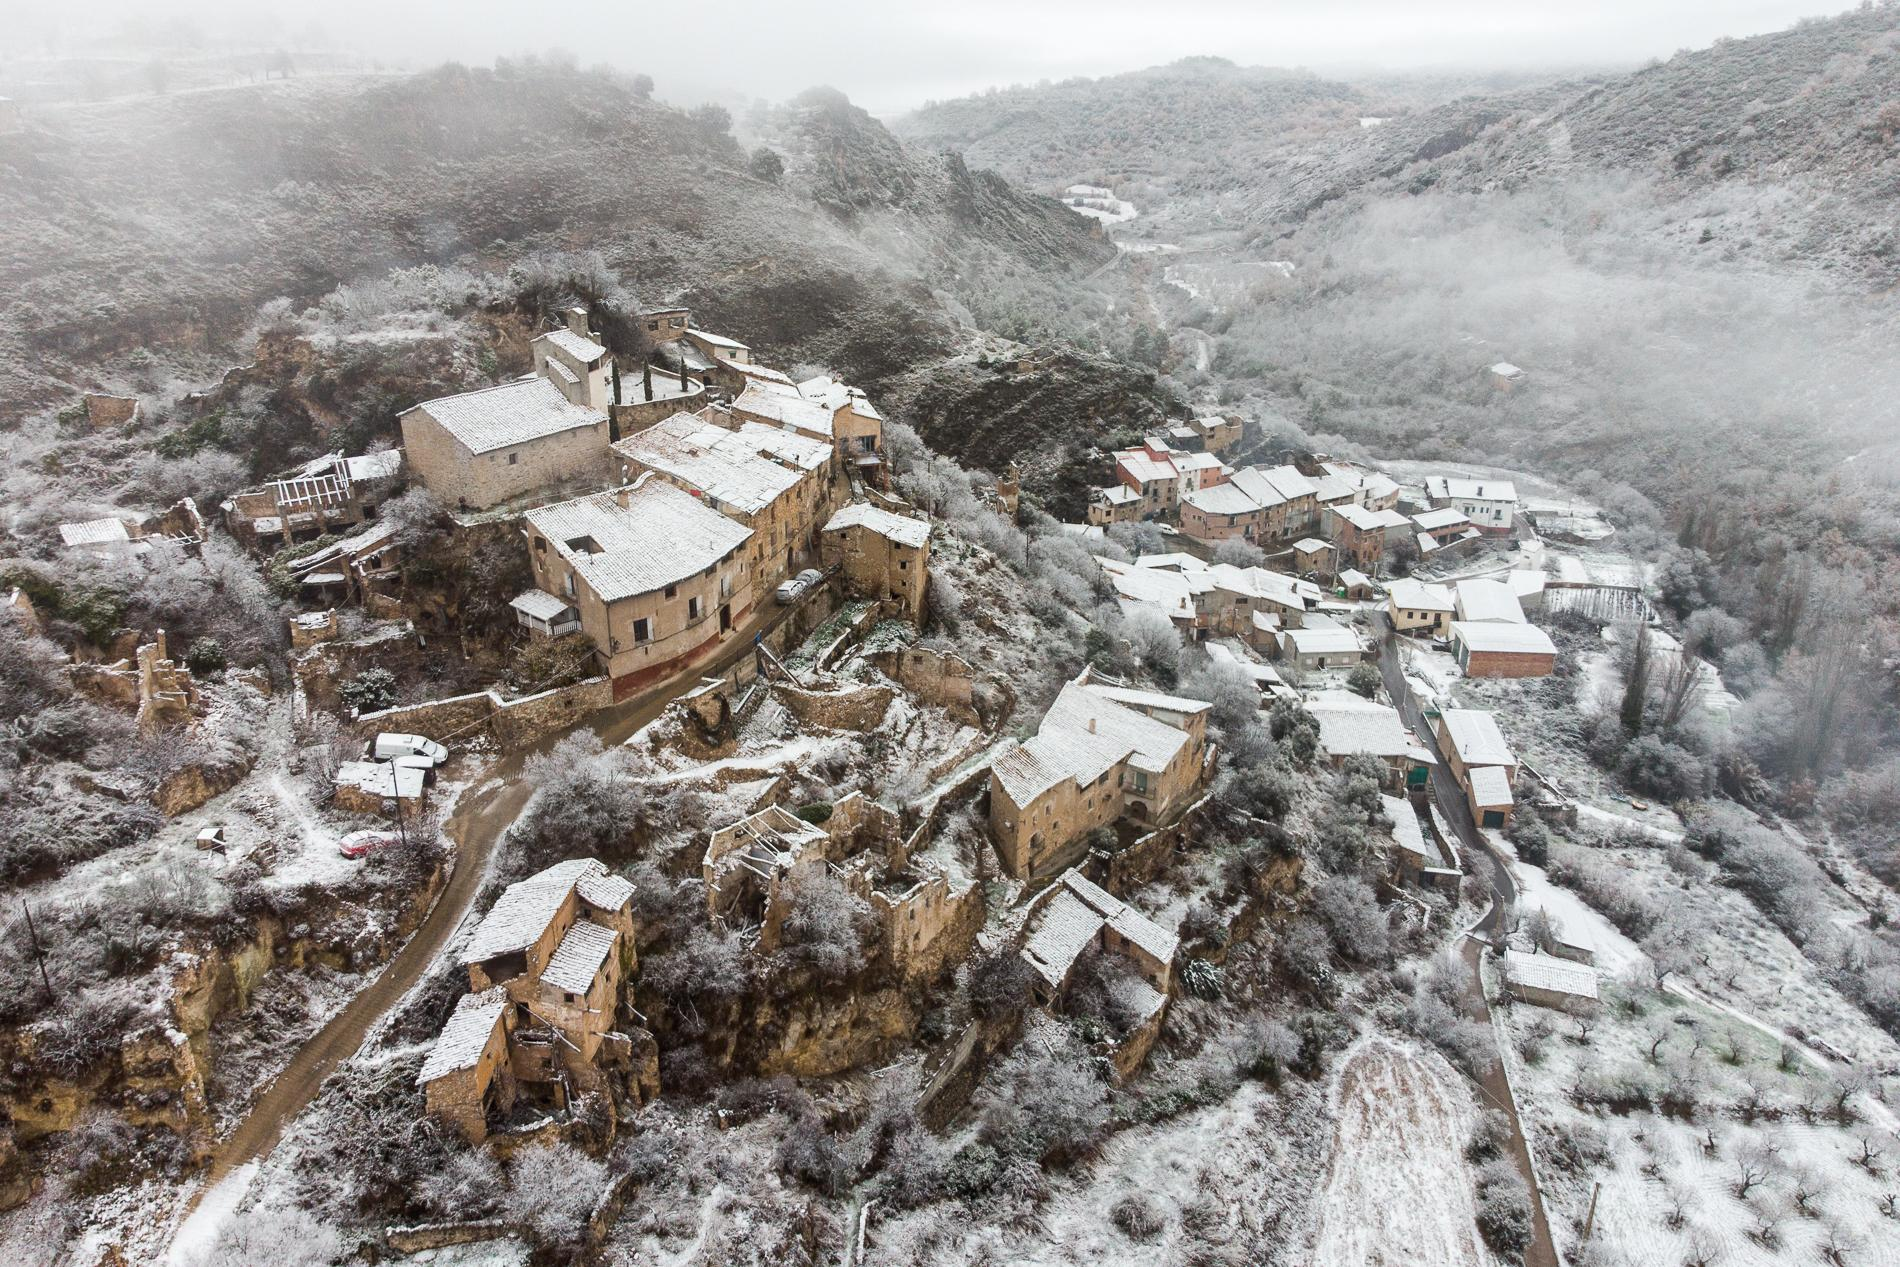 Aguinalíu is located in the desolate province of Aragón and is risking depopulation since decades. The village consists of two parts: on top of the mountain and at the bottom of the valley. The upper part has been abandoned in recent decades, but has been almost completely rebuilt by new residents in recent years. Aguinalíu, 7-12-2020